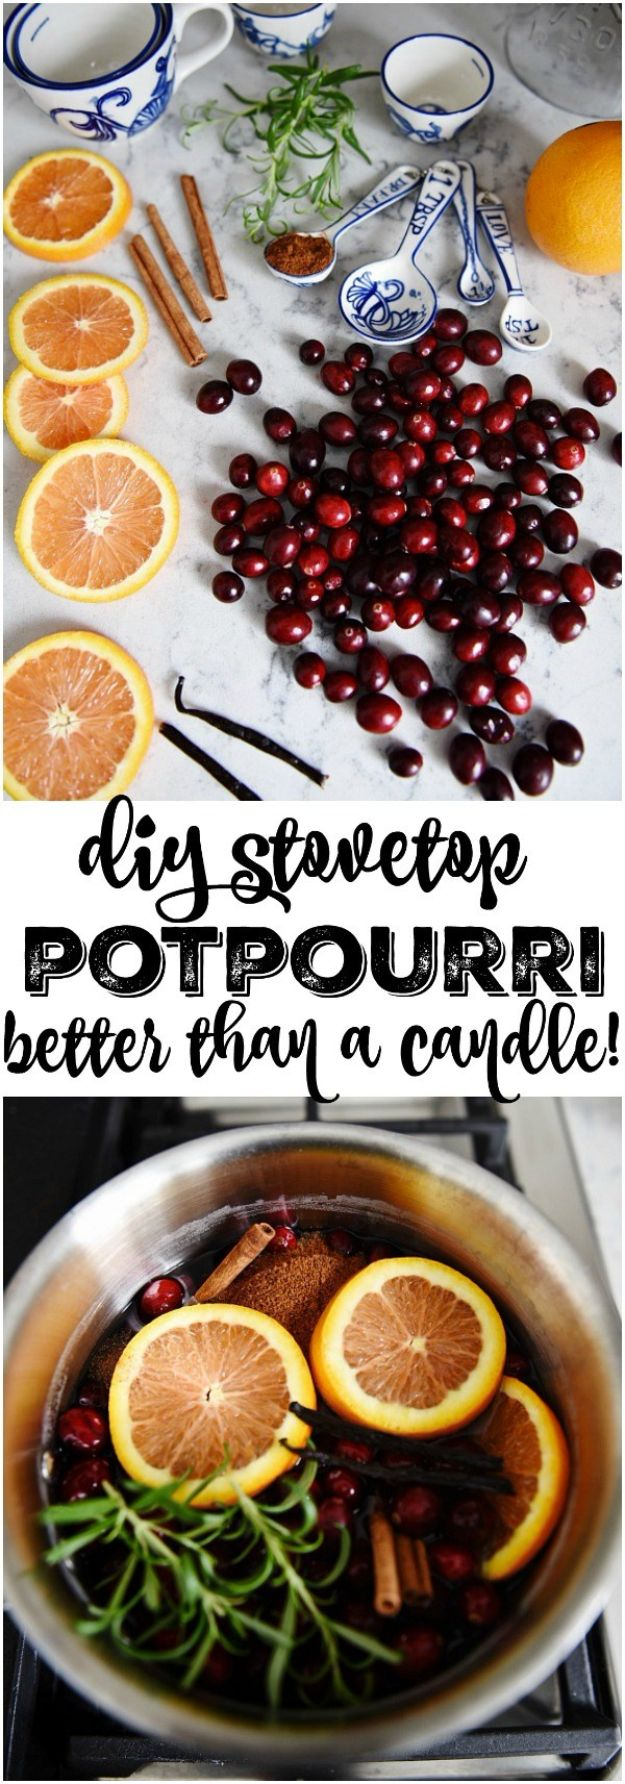 DIY Home Fragrance Ideas - DIY Stovetop Potpourri - Easy Ways To Make your House and Home Smell Good - Essential Oils, Diffusers, DIY Lampe Berger Oil, Candles, Room Scents and Homemade Recipes for Odor Removal - Relaxing Lavender, Fresh Clean Smells, Lemon, Herb